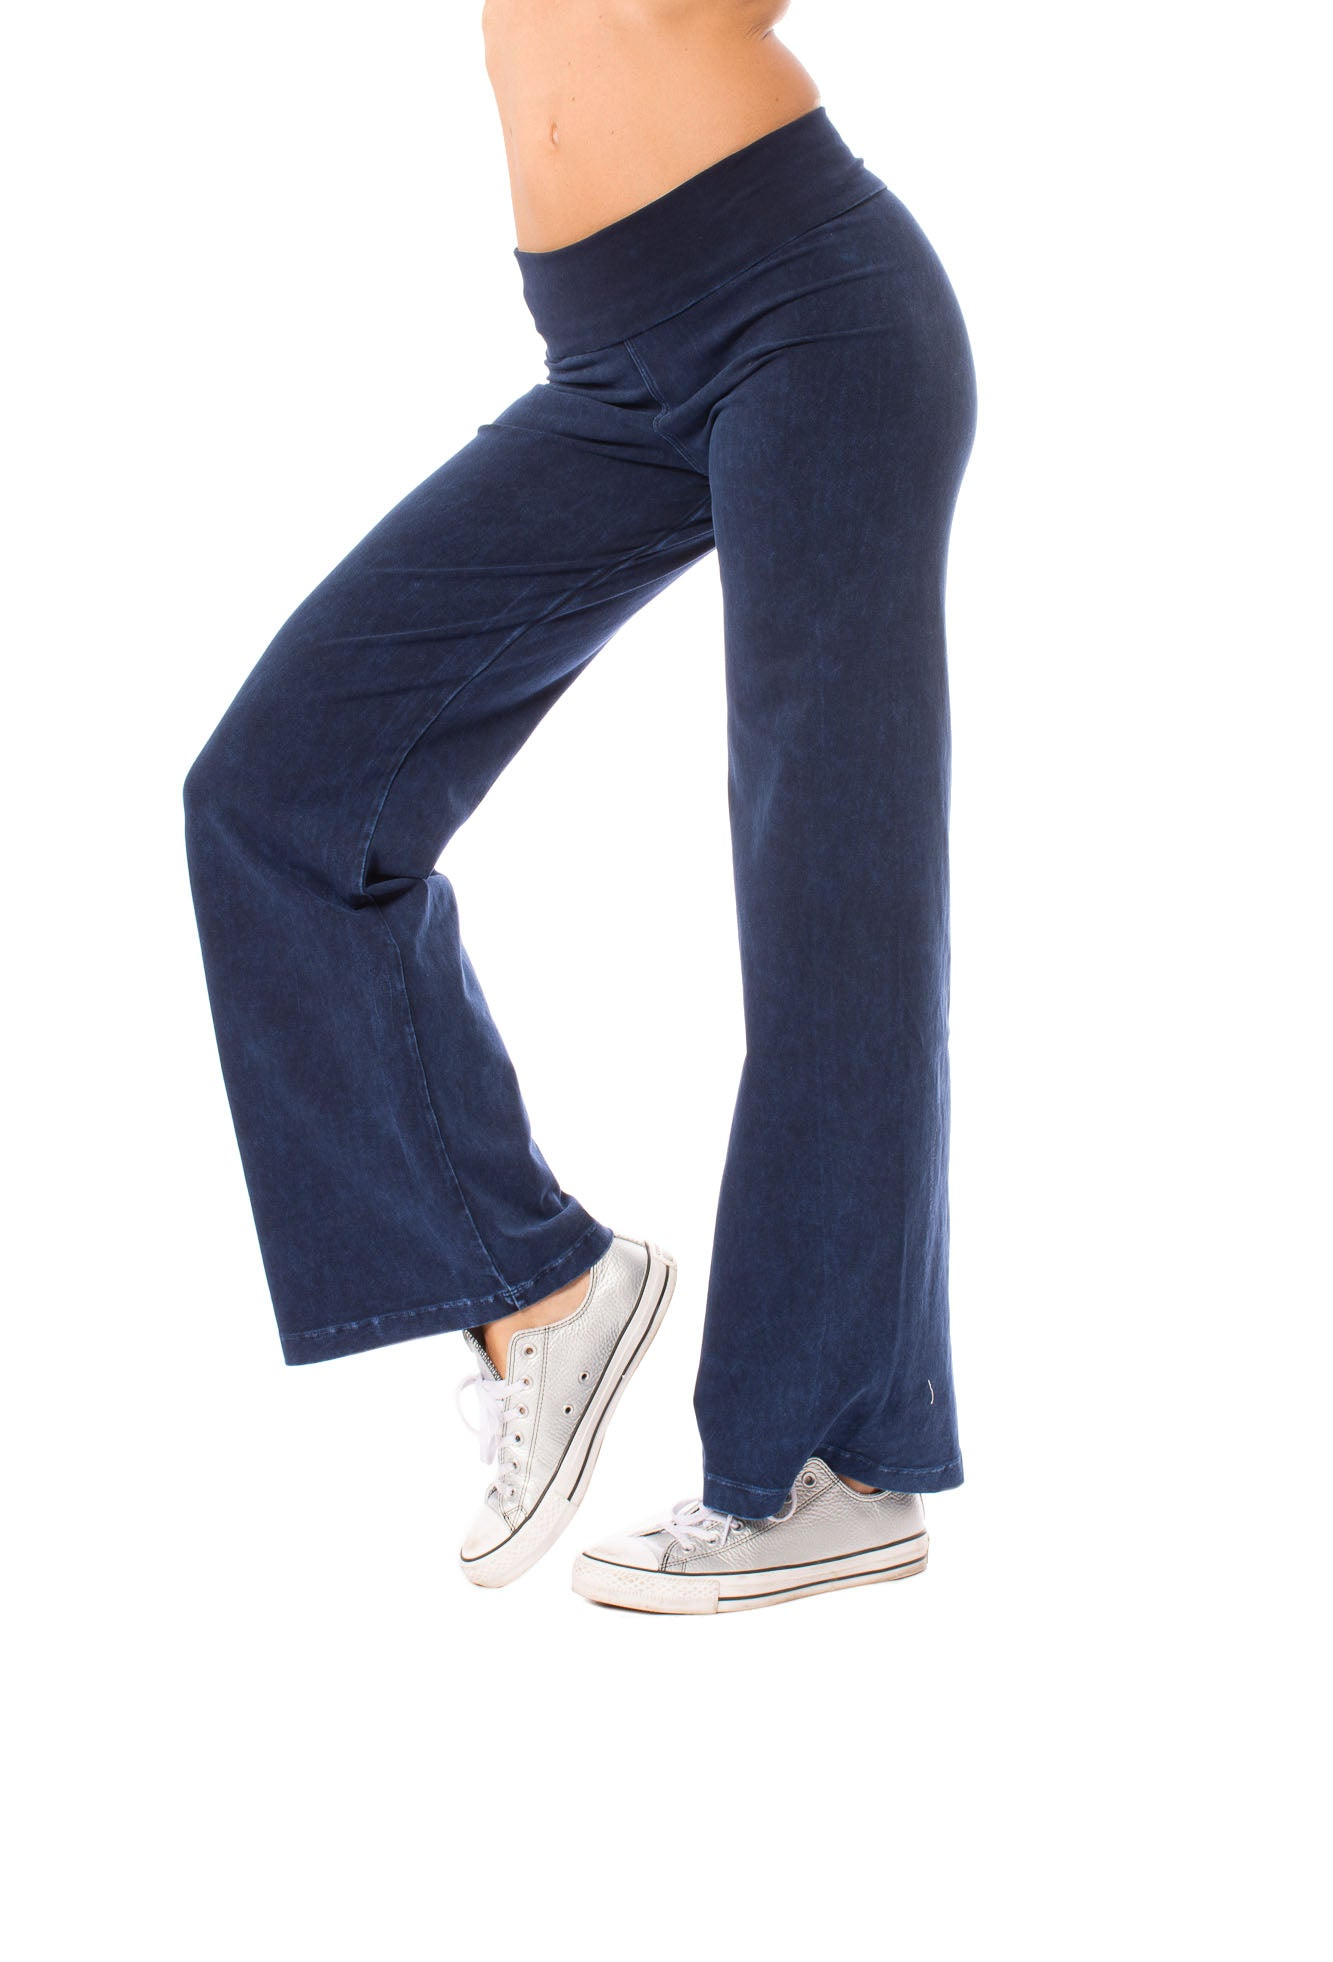 Hard Tail Forever - Wide Leg Roll Down Pants (W-326, Mineral Wash MW8)